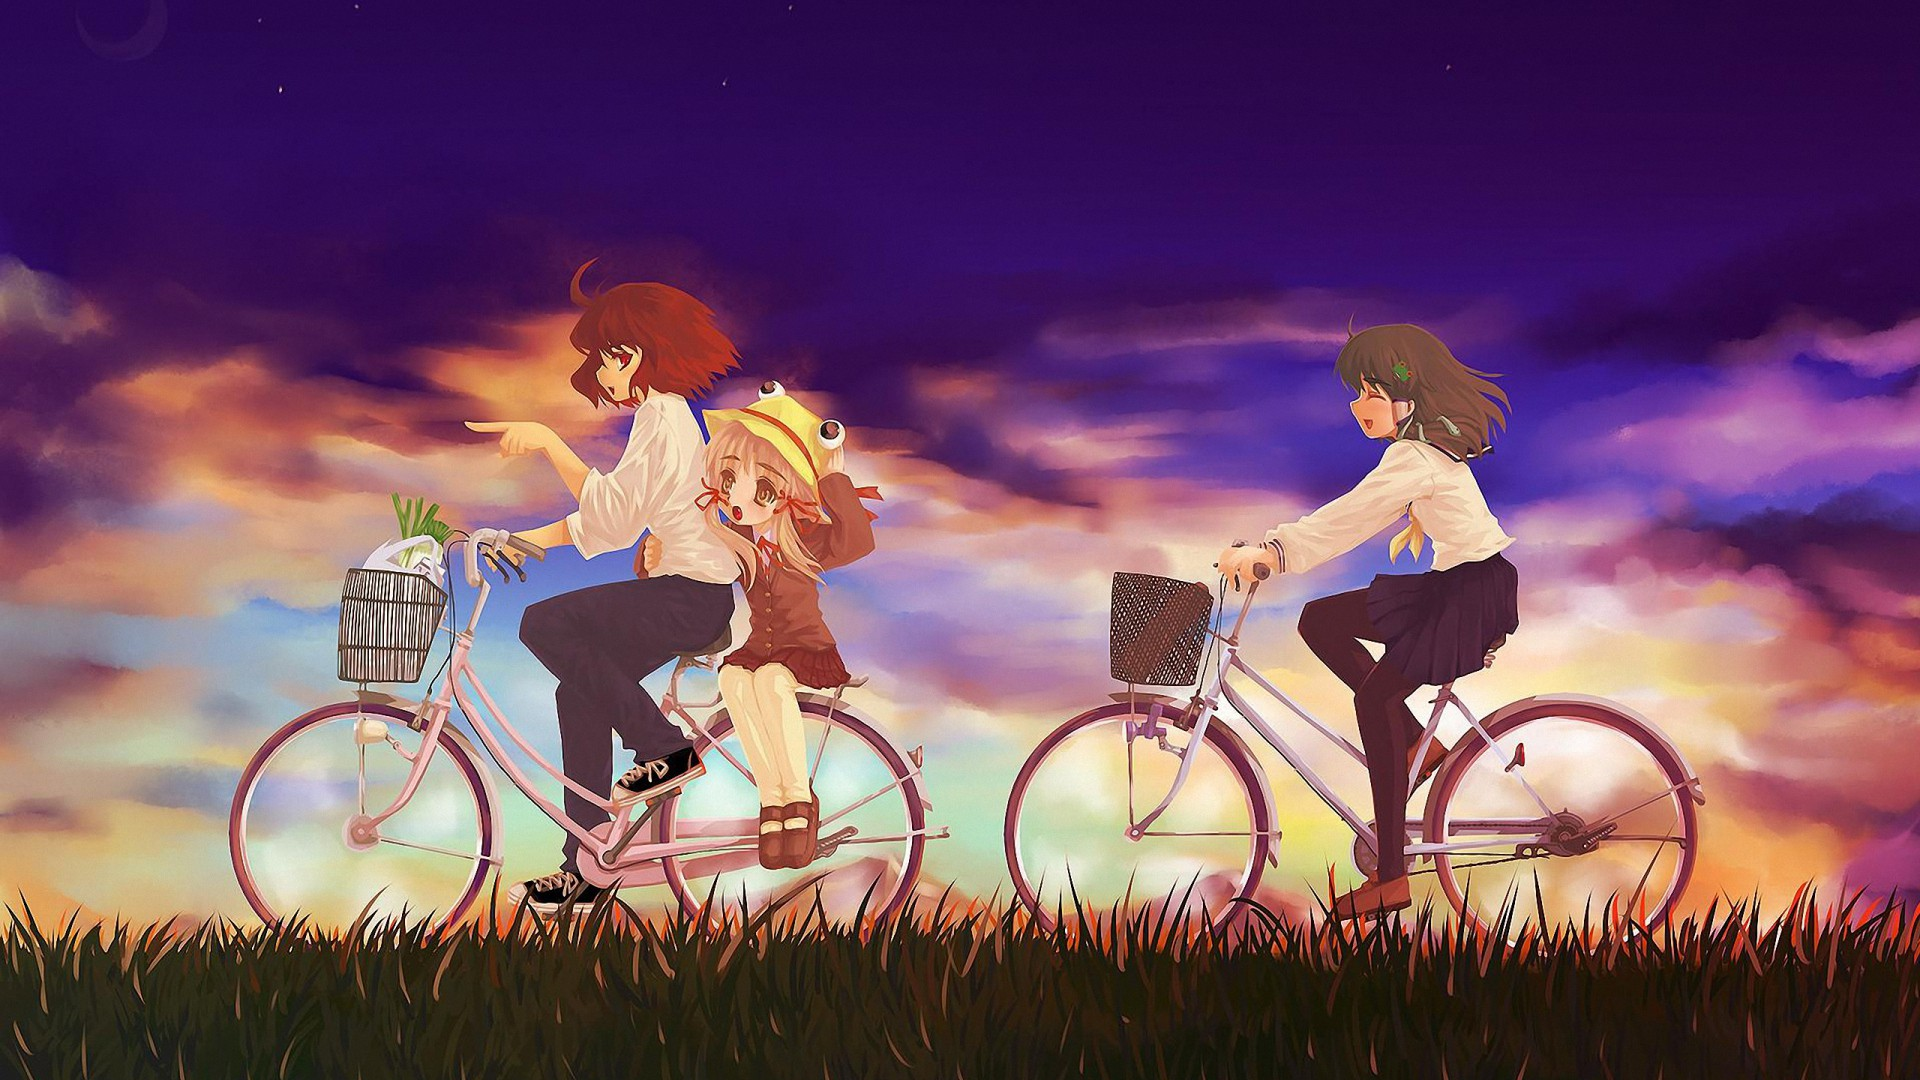 1080p Full Hd Wallpapers Anime Wallpapers Friendship